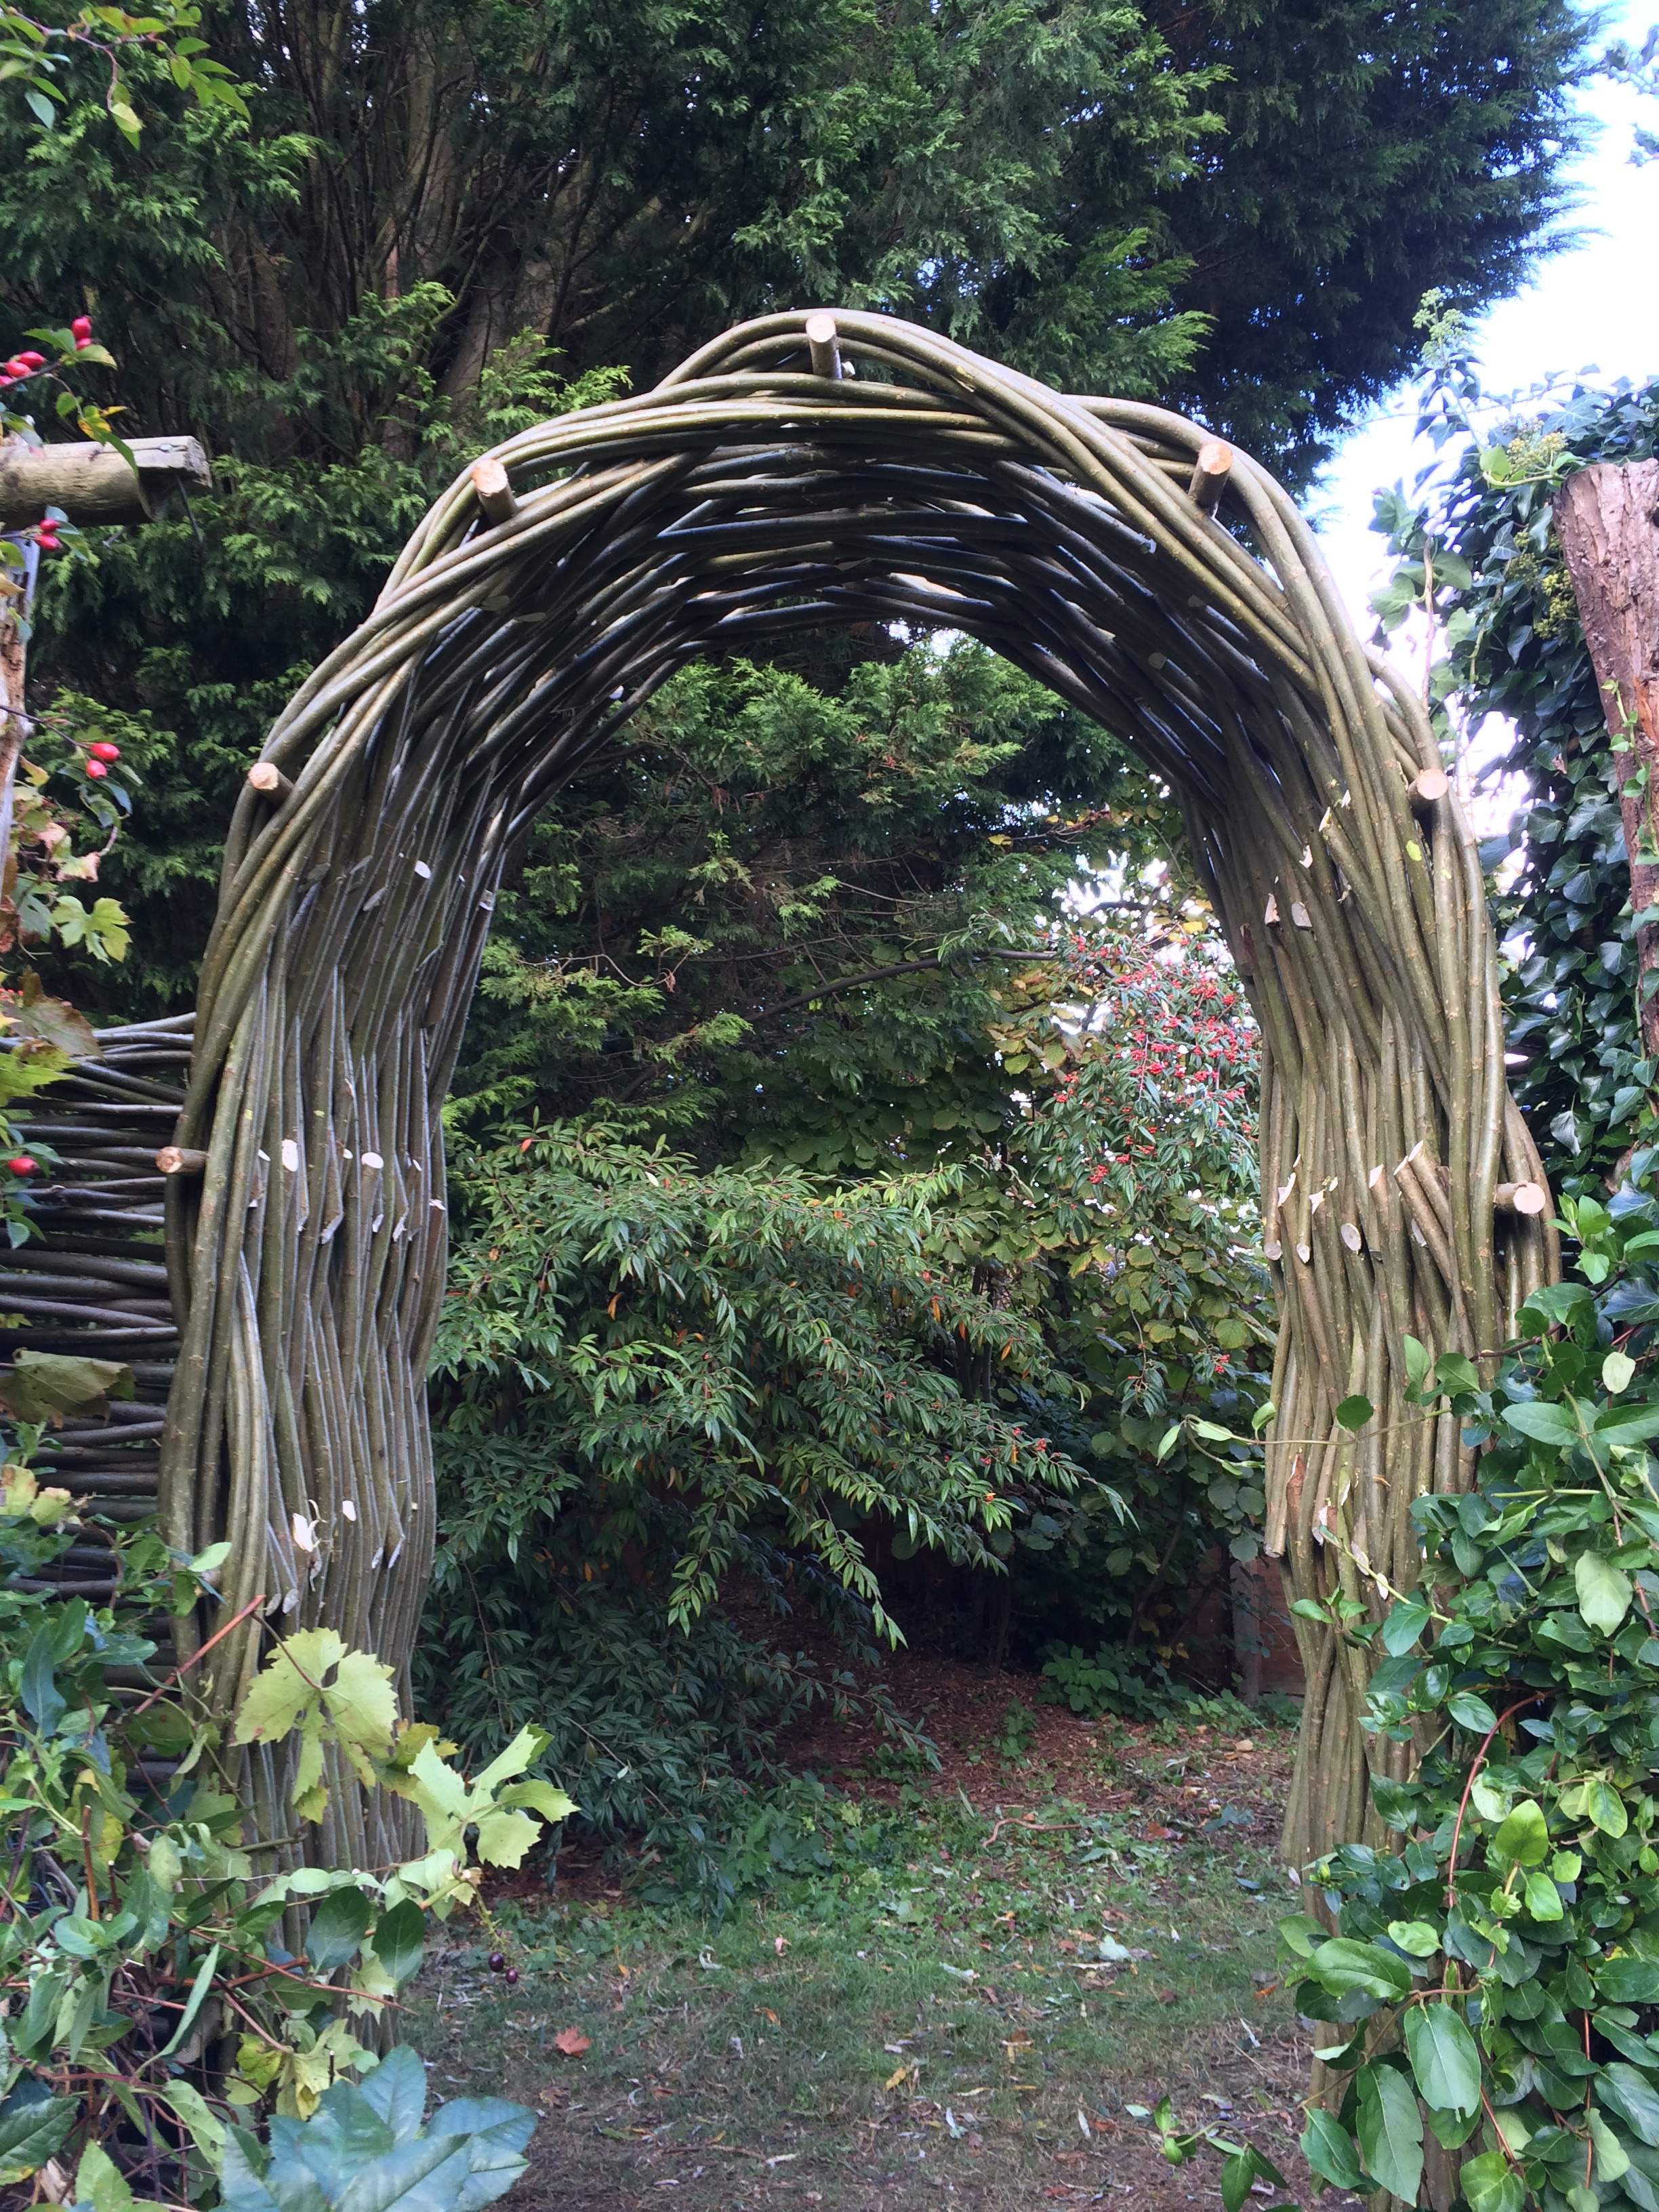 Woven archway